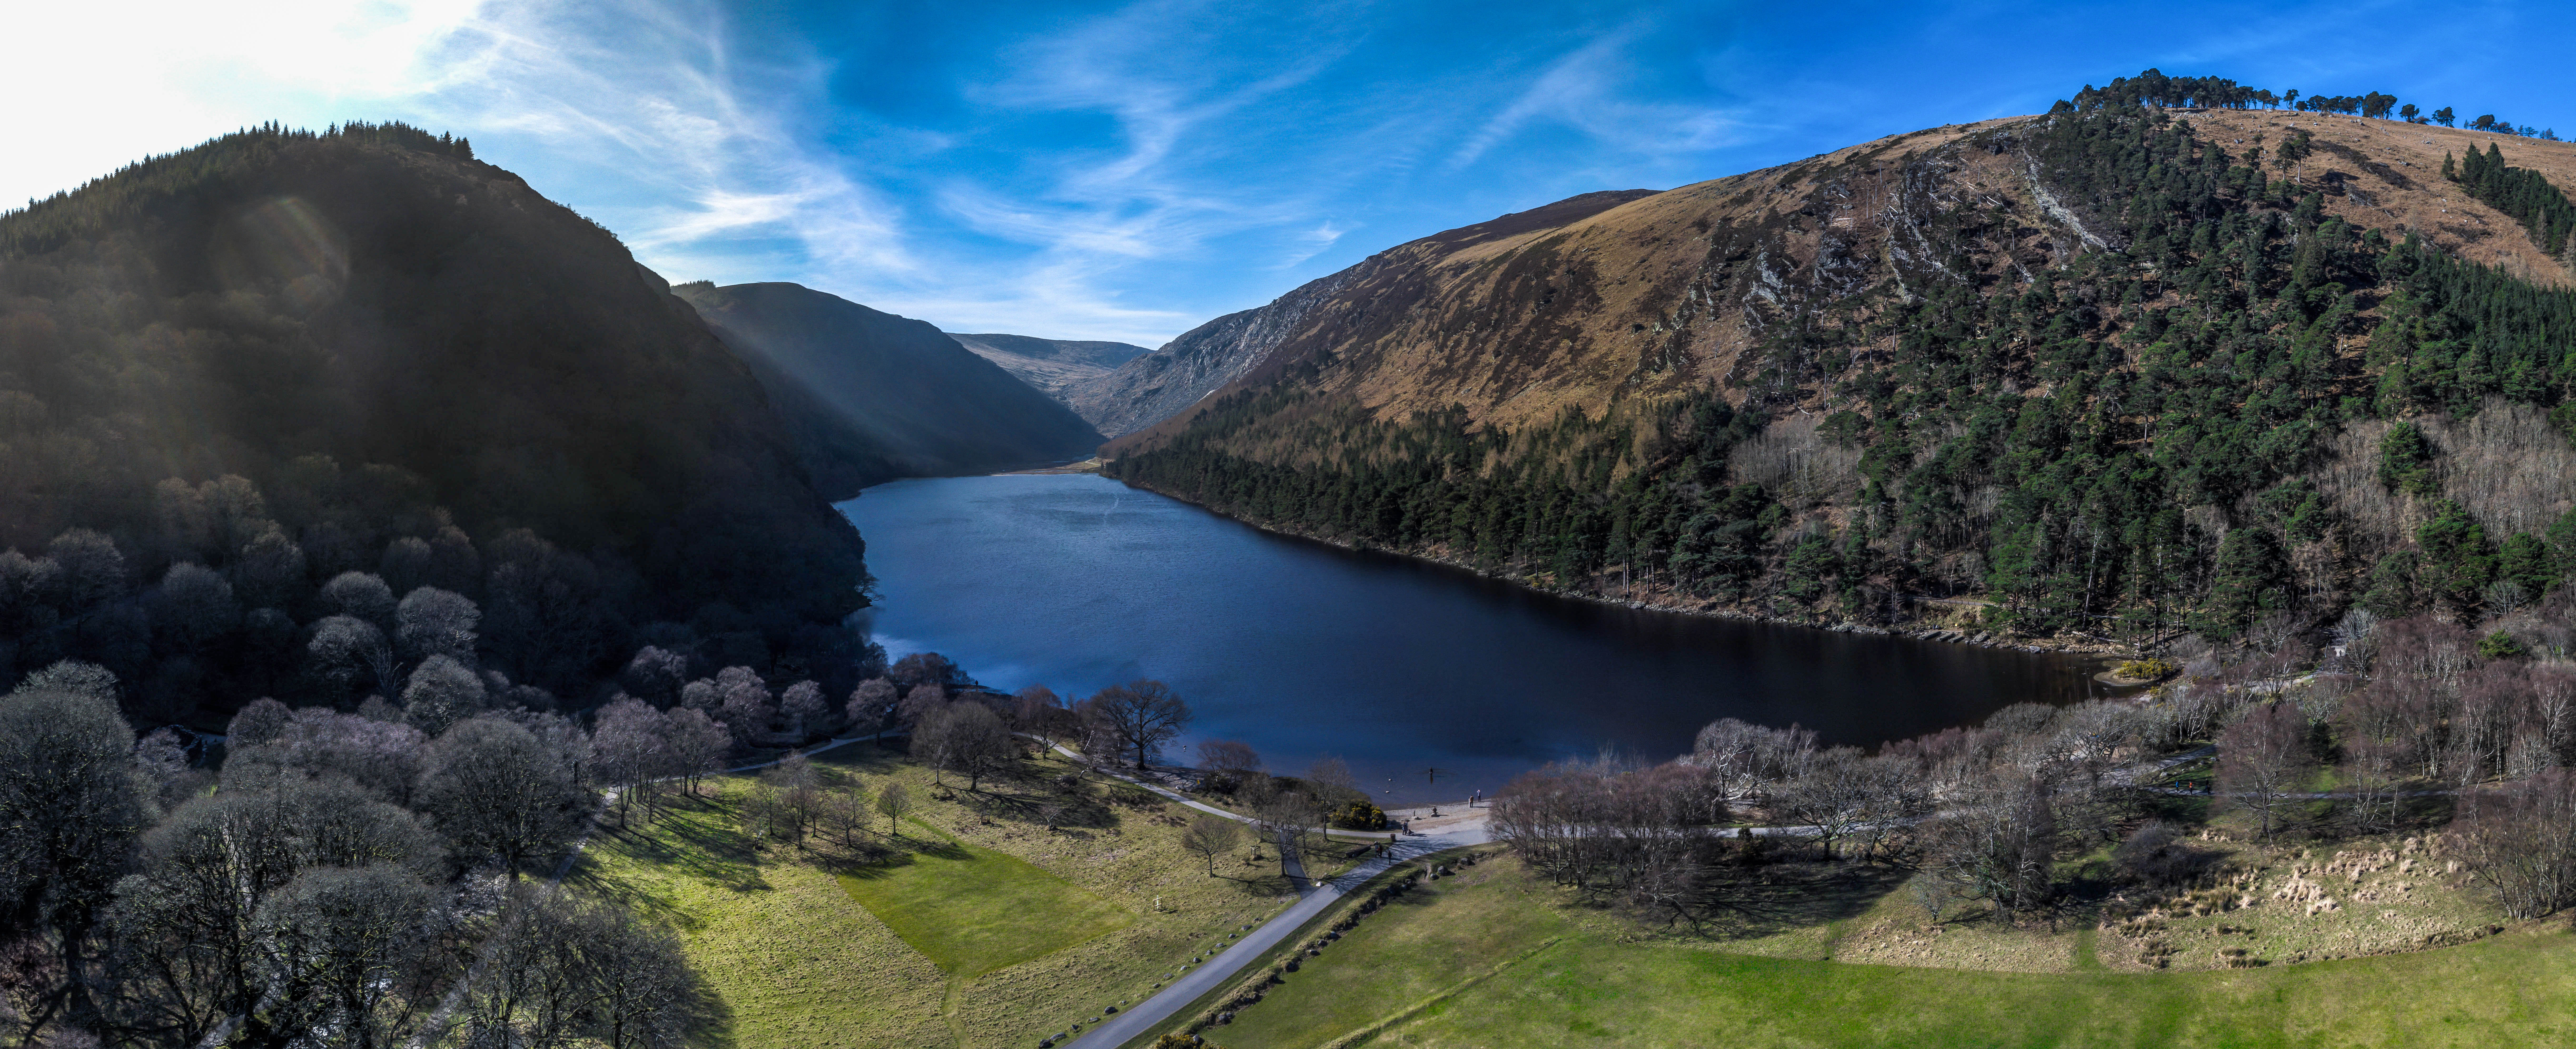 Glendalough with increased Shadows-2 copy